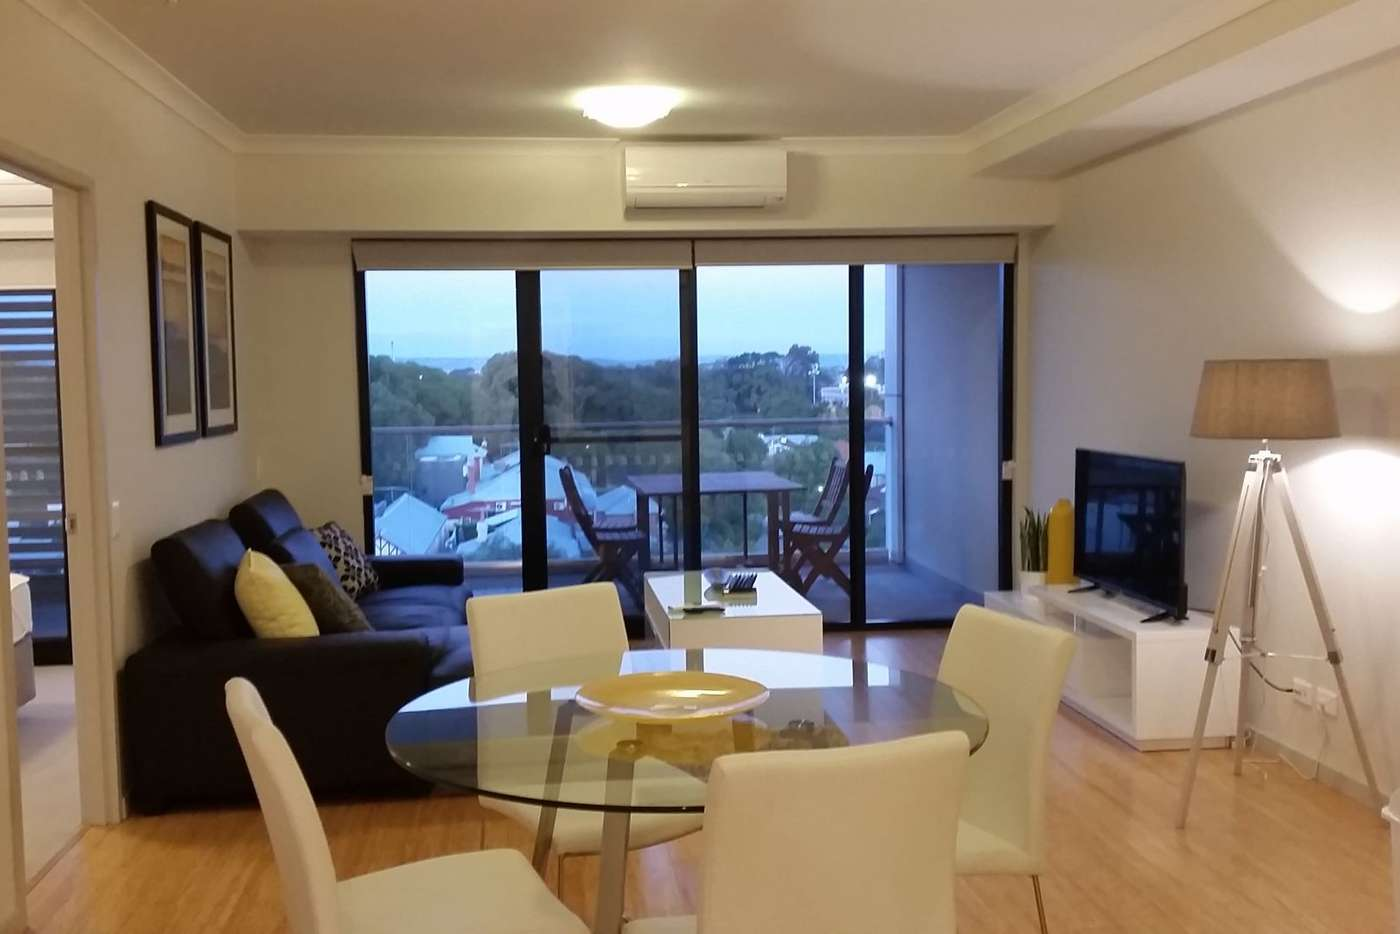 Main view of Homely apartment listing, 27/602 Beaufort Street, Mount Lawley WA 6050